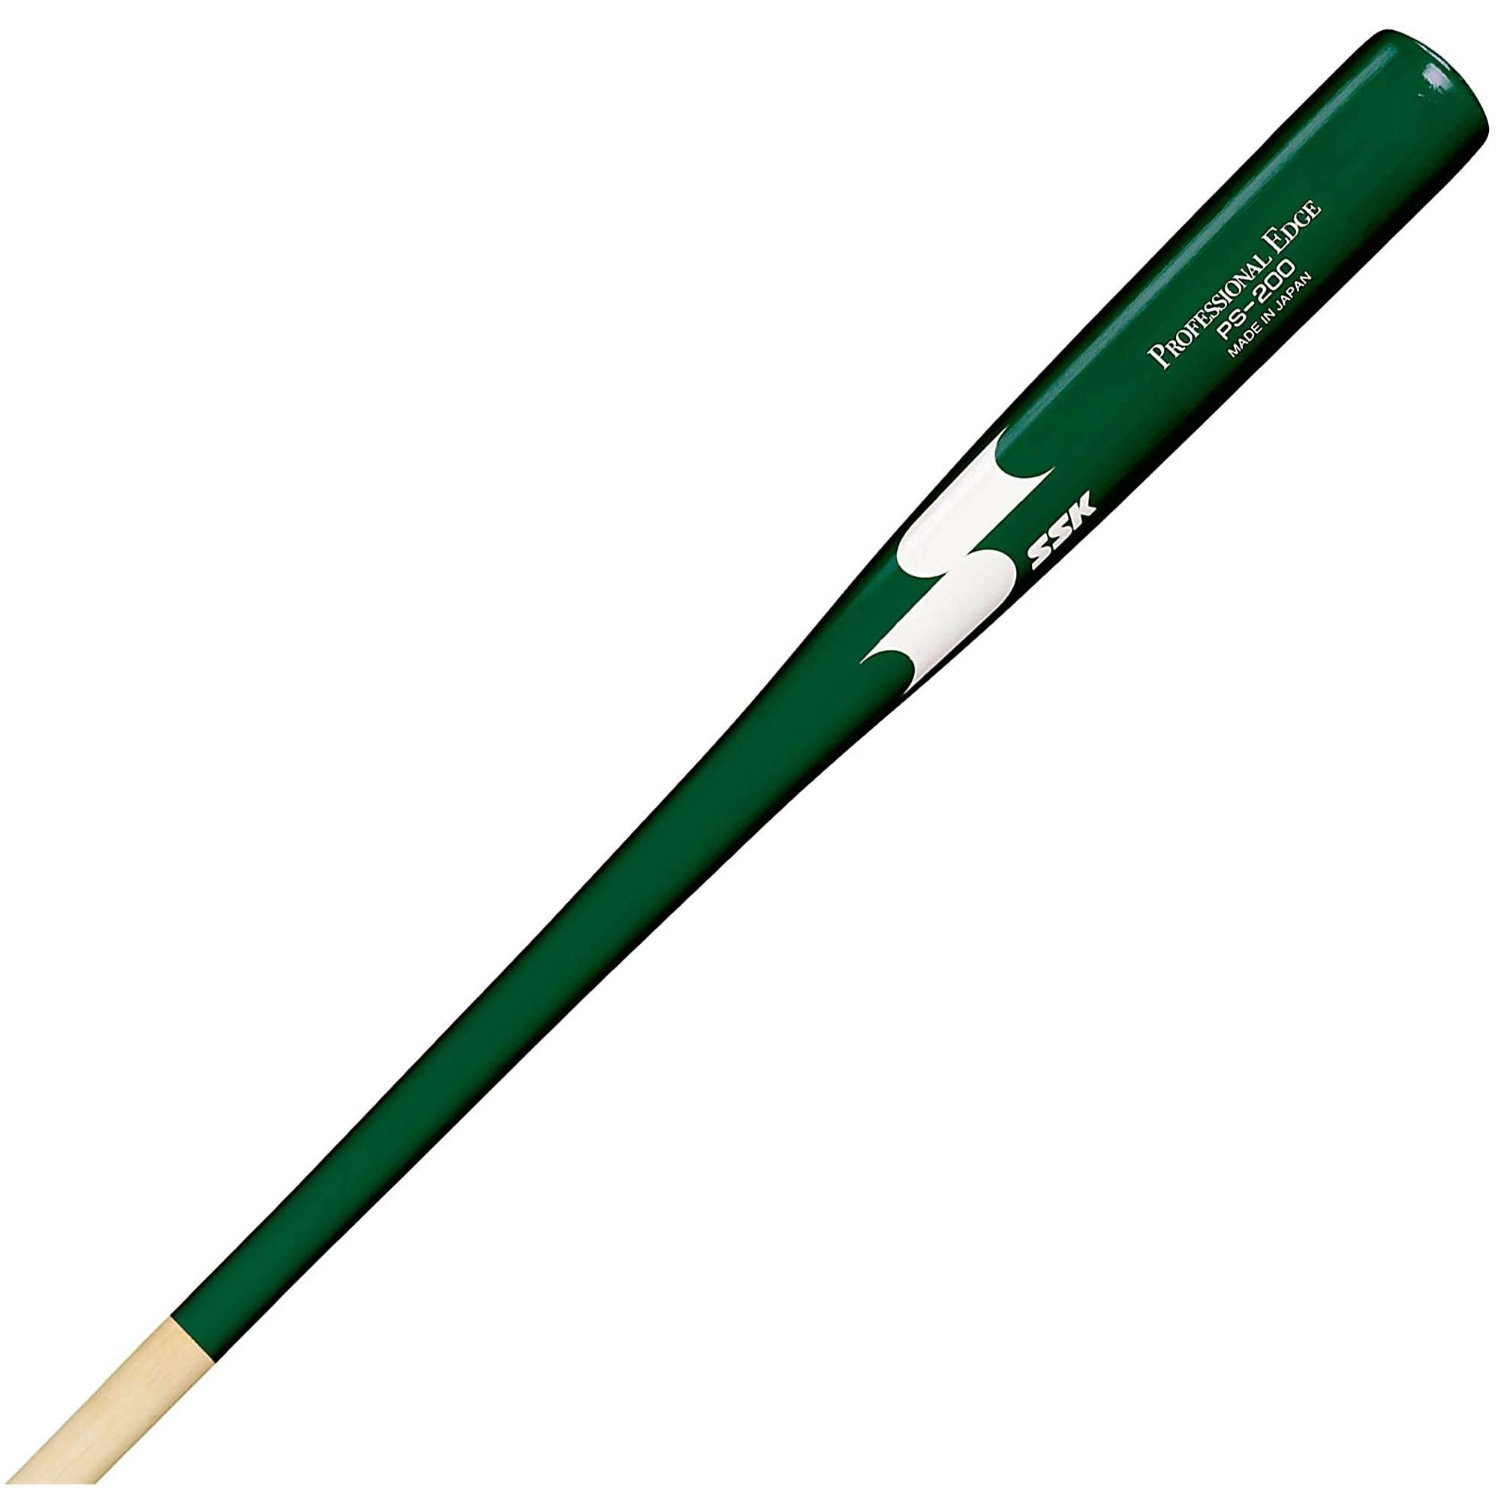 SSK PS200 Dark Green Fungo Wood 37'' Baseball Coaches Bat Lightweight by SSK